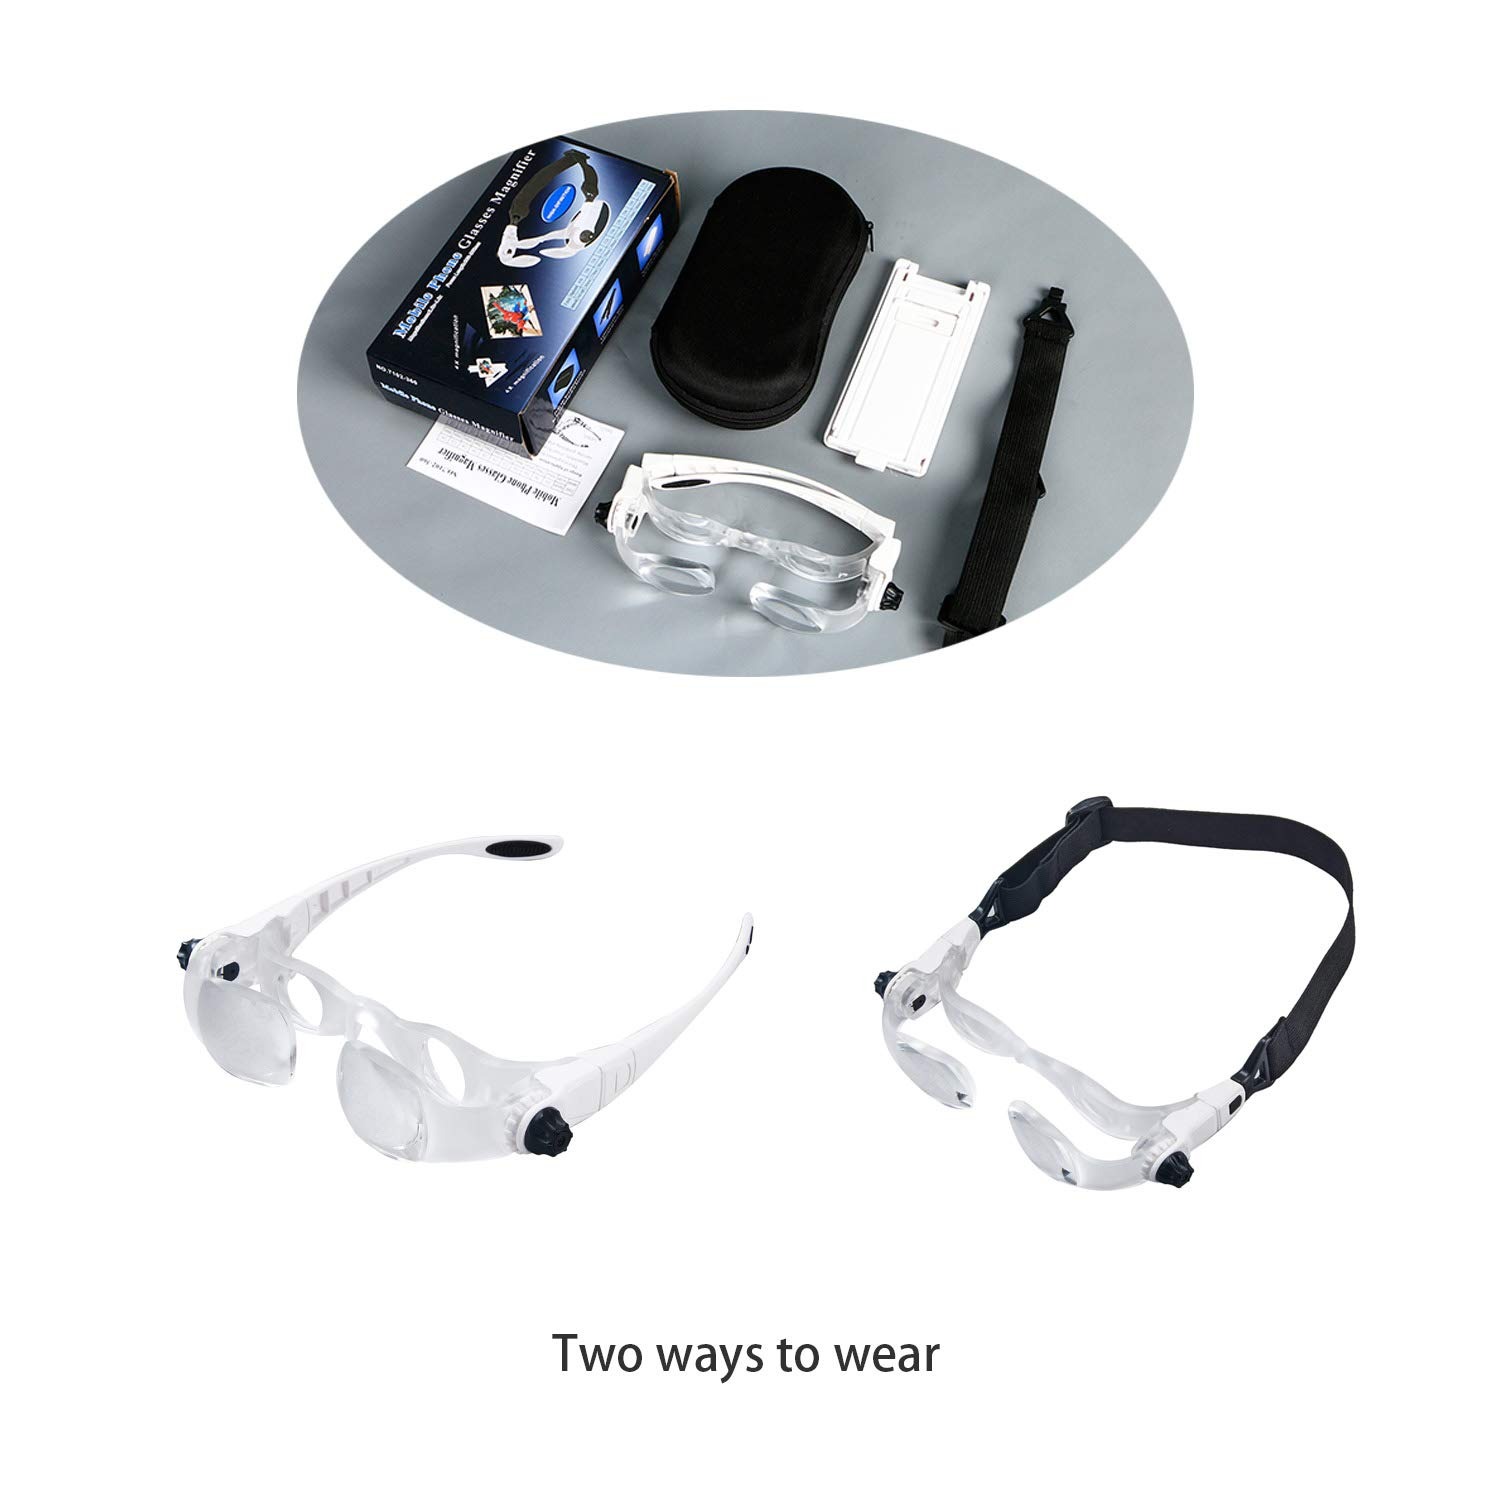 Mufly Adjustable TV Magnifying Glass 1.5X-3.8X Aid 0 to 300 Degree Far-Sightedness/Eye Glasses with Headband Phone Holder